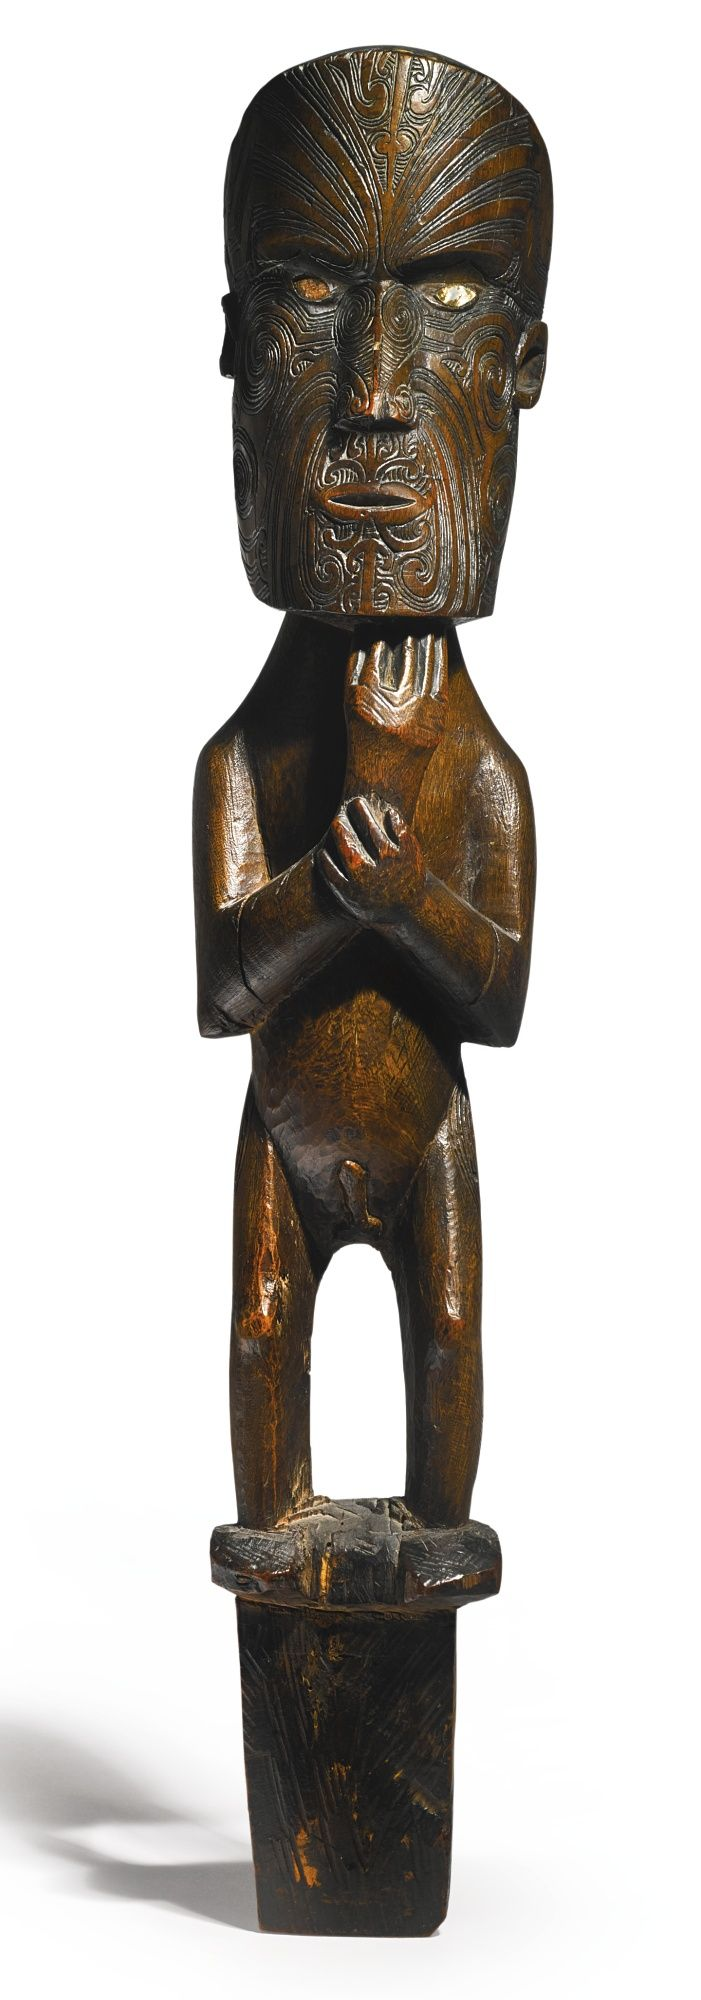 Maori Gable Ornement Figure, Nouvelle-Zélande | Lot | Sotheby